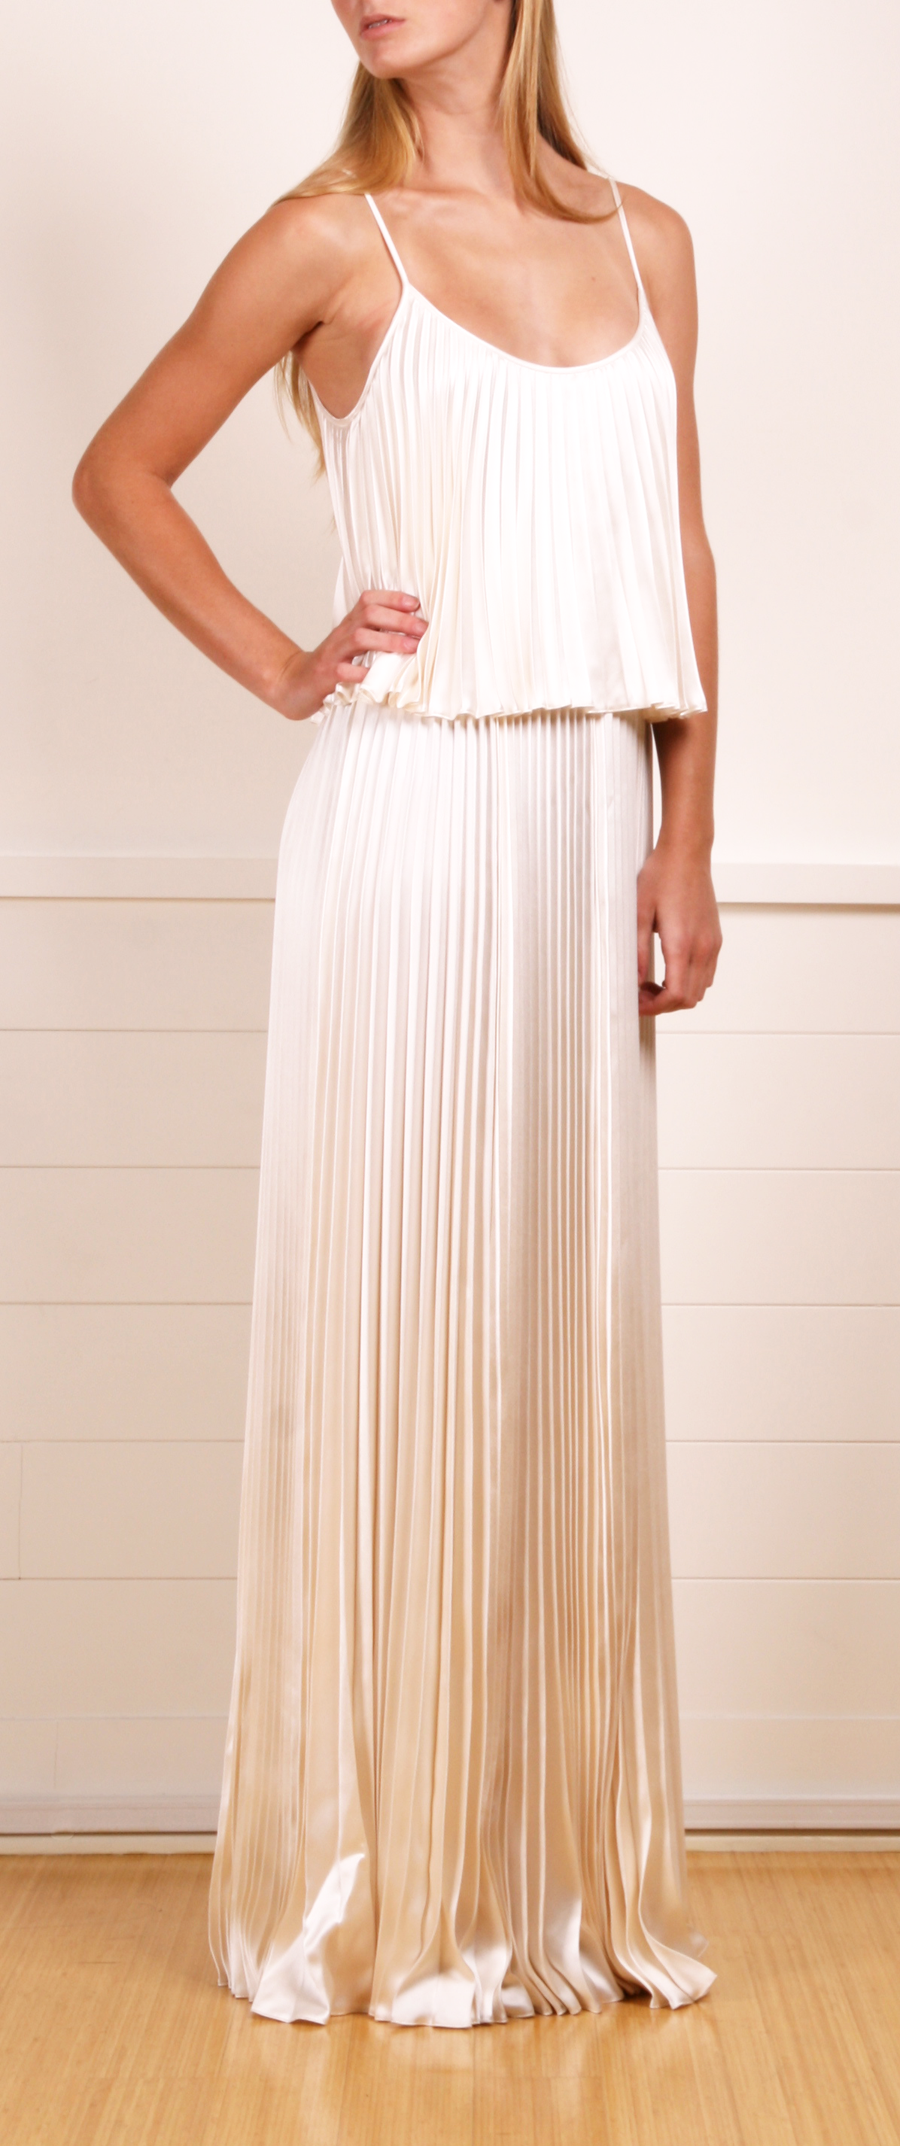 a3afe9a40c0 HALSTON HERITAGE DRESS  Michelle Flynn Coleman-HERS